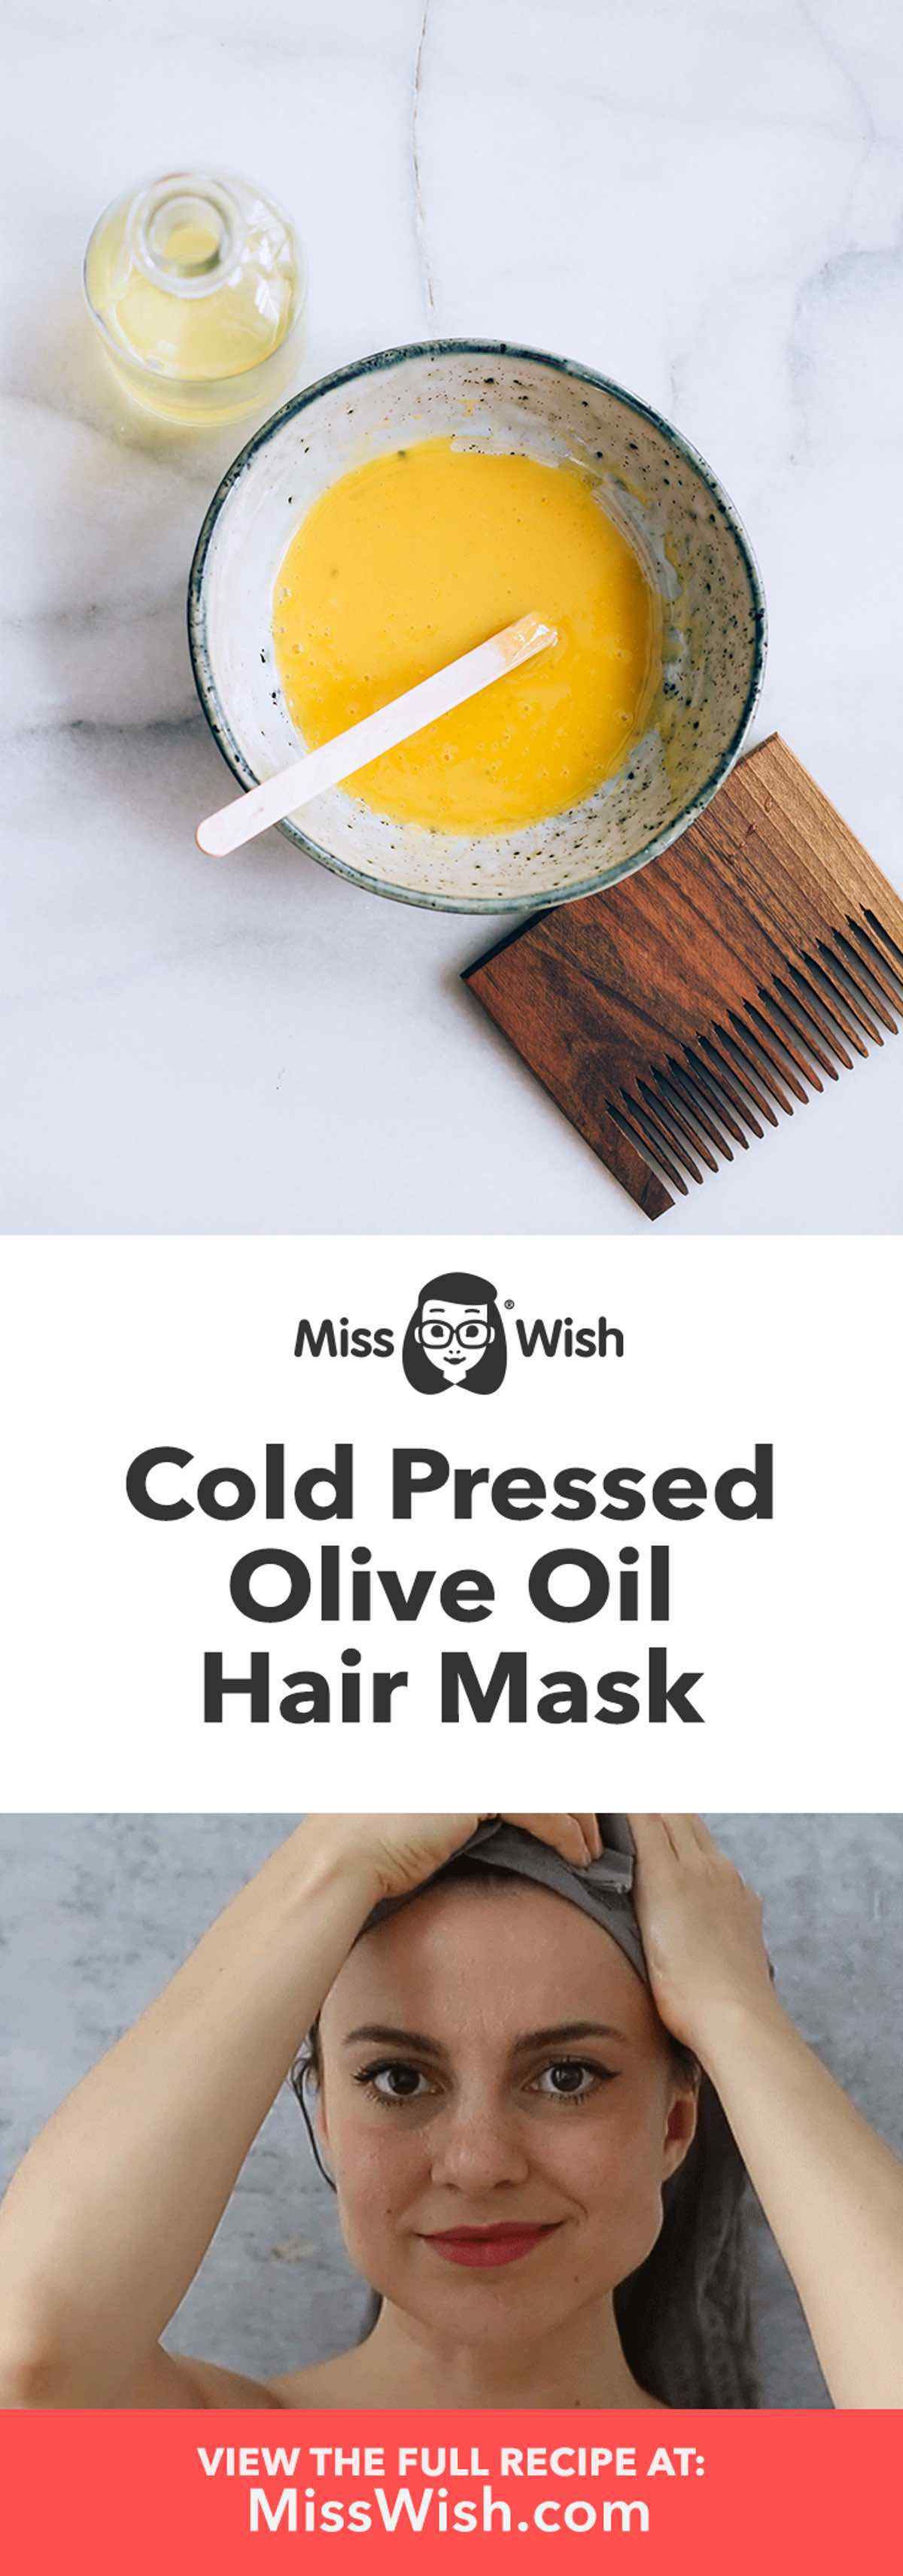 Cold Pressed Olive Oil Hair Mask